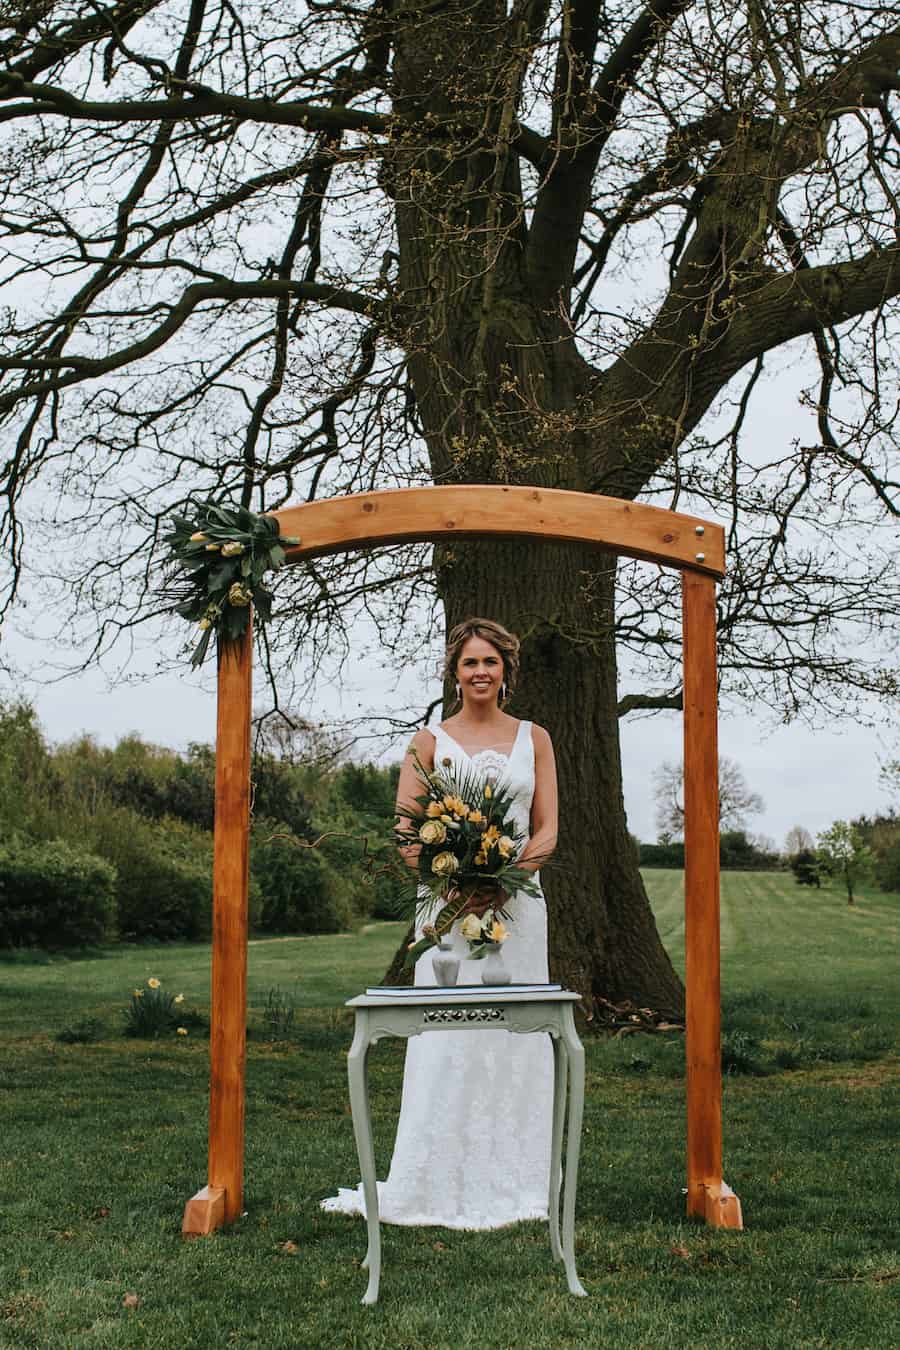 Outdoor Wedding Ceremony | Bawdon Lodge Farm |Styled by Tickety Boo Events | Image by Ed Brown Photography